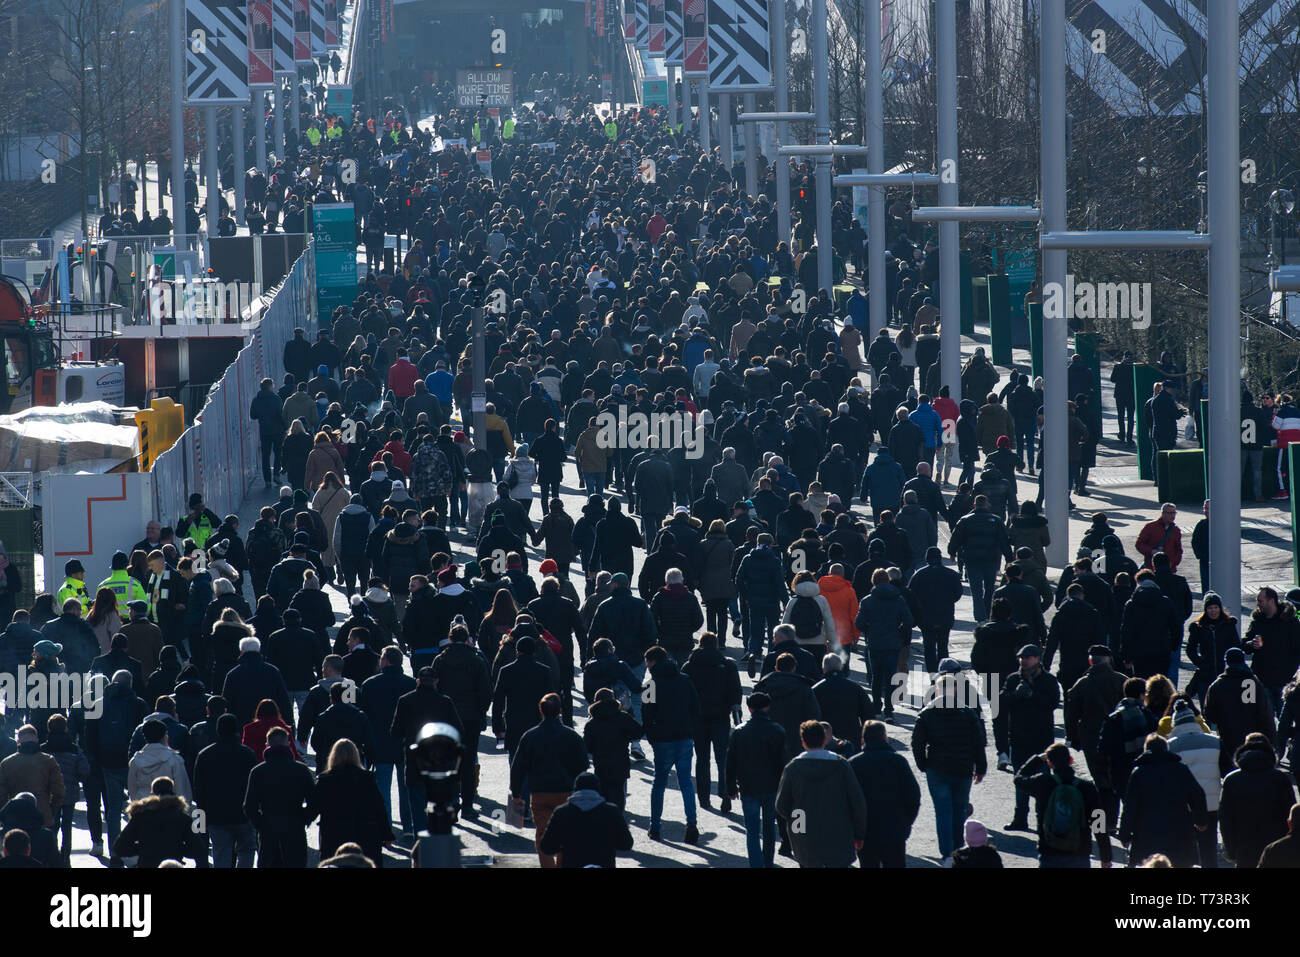 Thousand of football supporters at Wembley Park for a Premier League game between Tottenham Hotspur and Newcastle (final result: 1-0), February 2019. - Stock Image